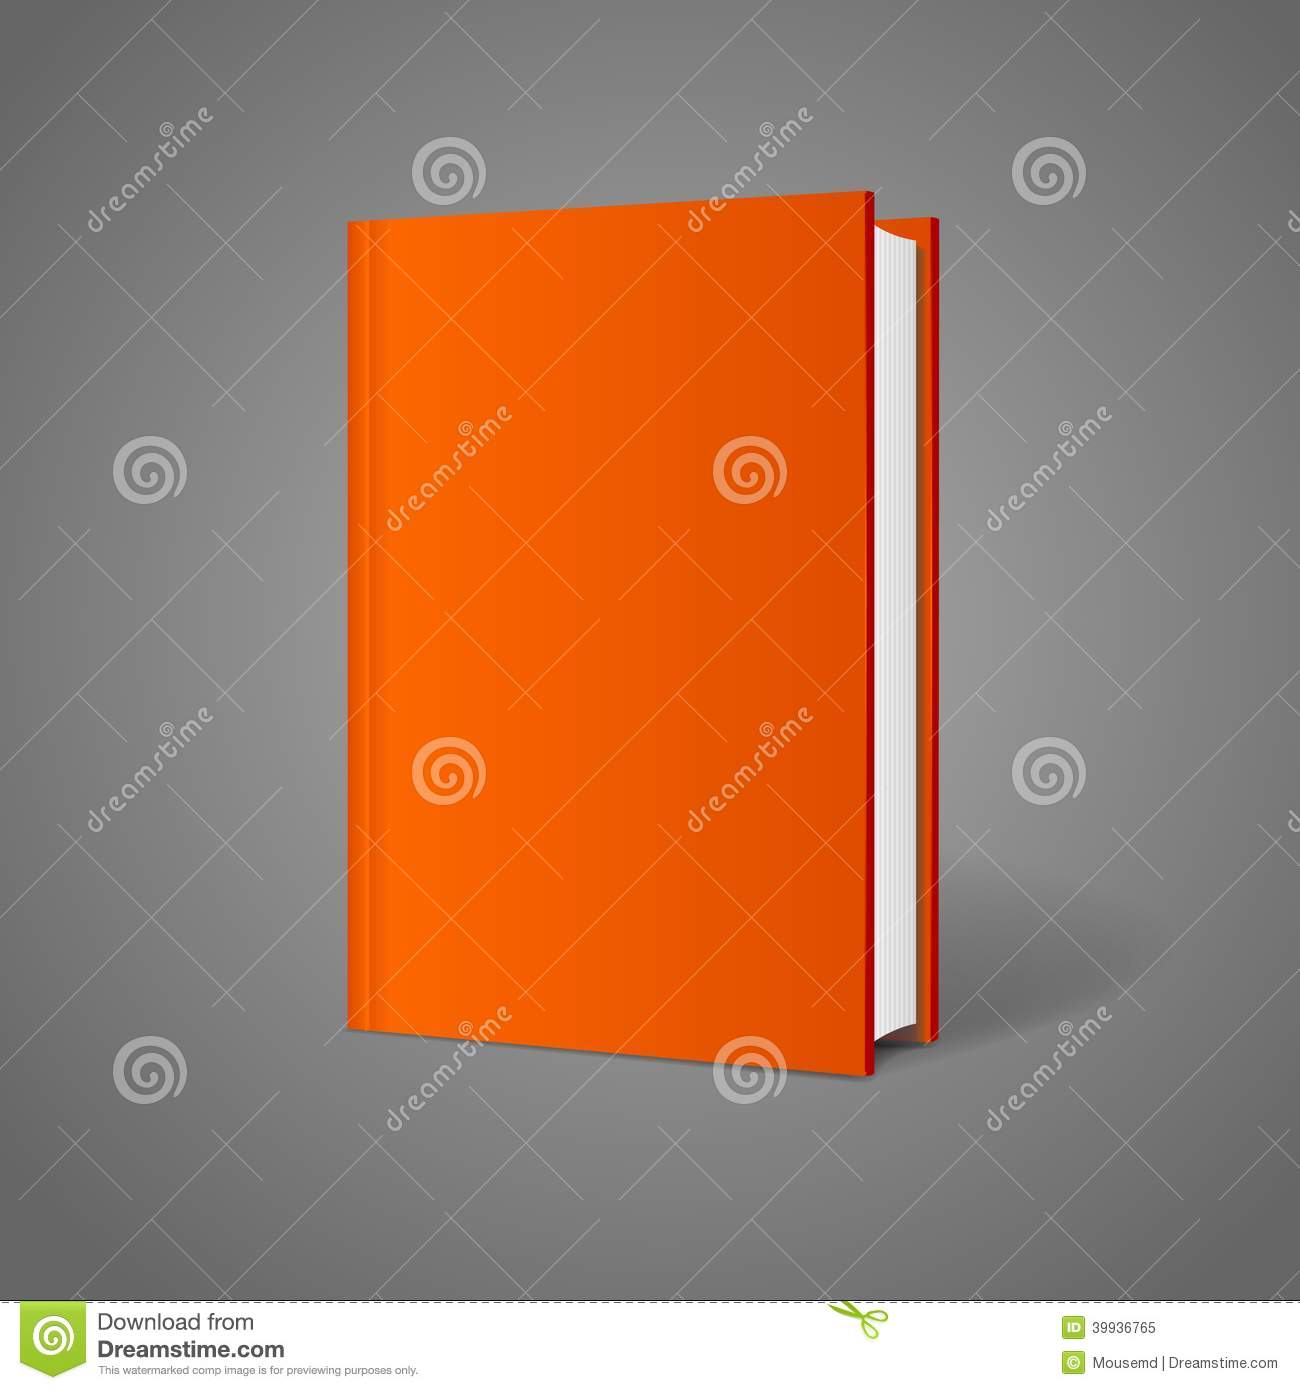 Blank Book Cover Vector Illustration Free ~ Vector blank book cover perspective orange stock